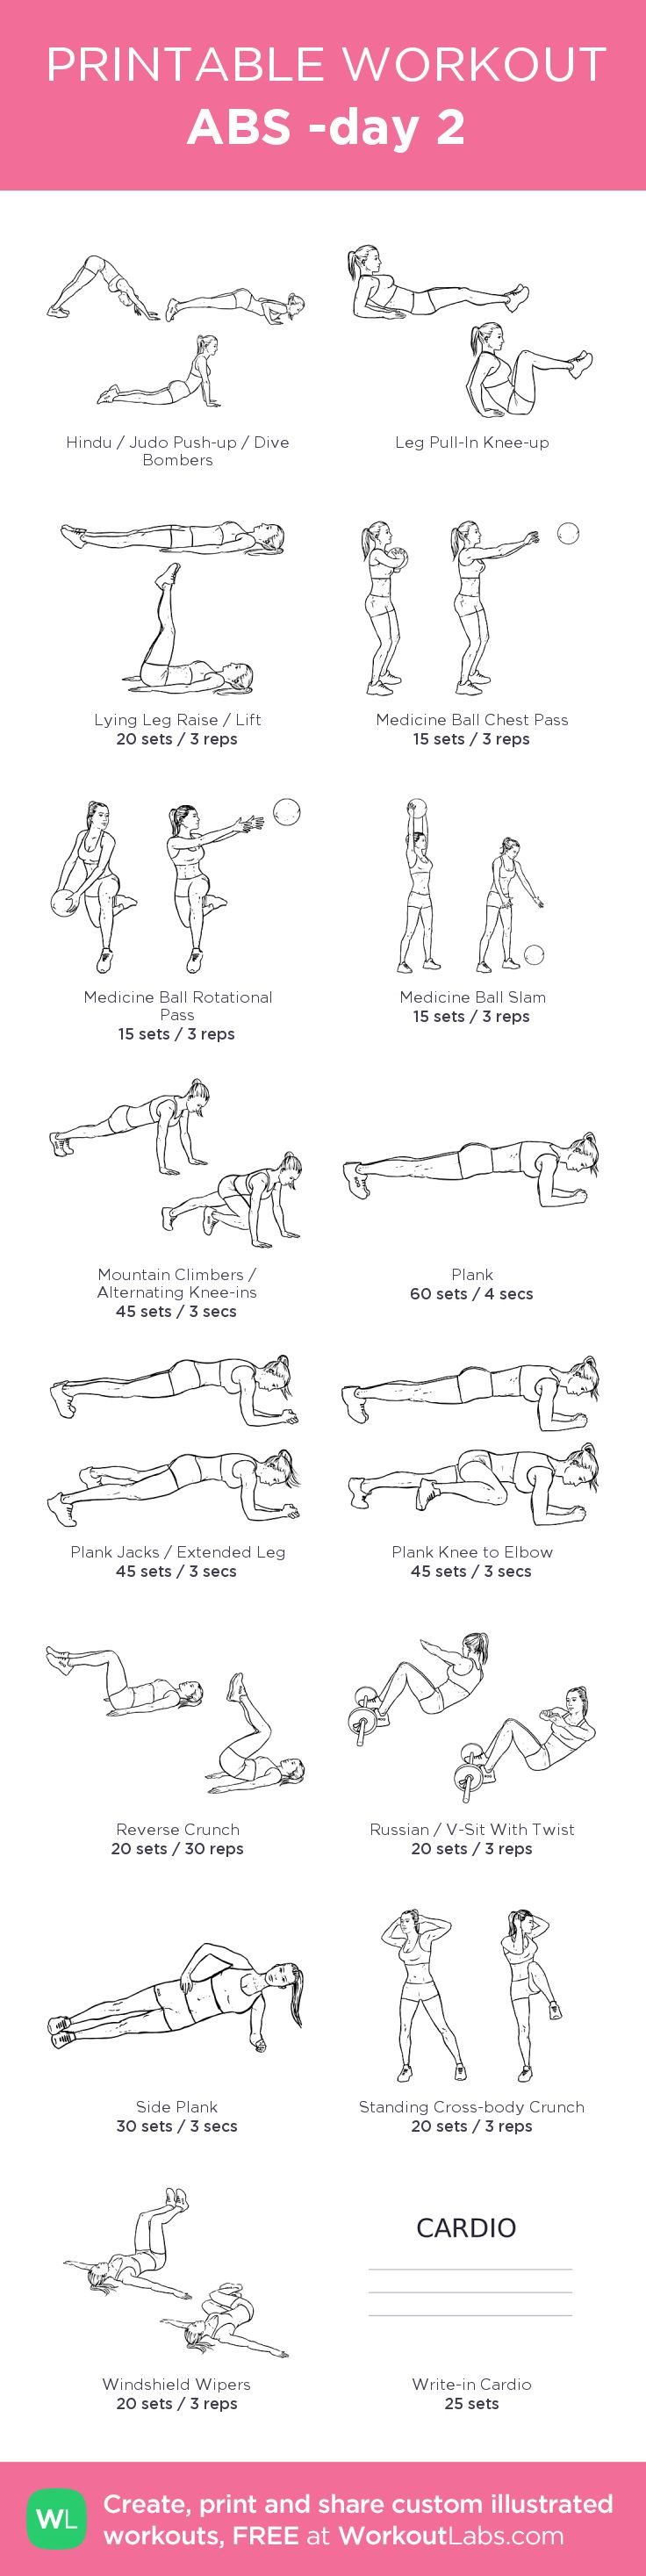 ABS -day 2:my visual workout created at WorkoutLabs.com • Click through to customize and download as a FREE PDF! #customworkout